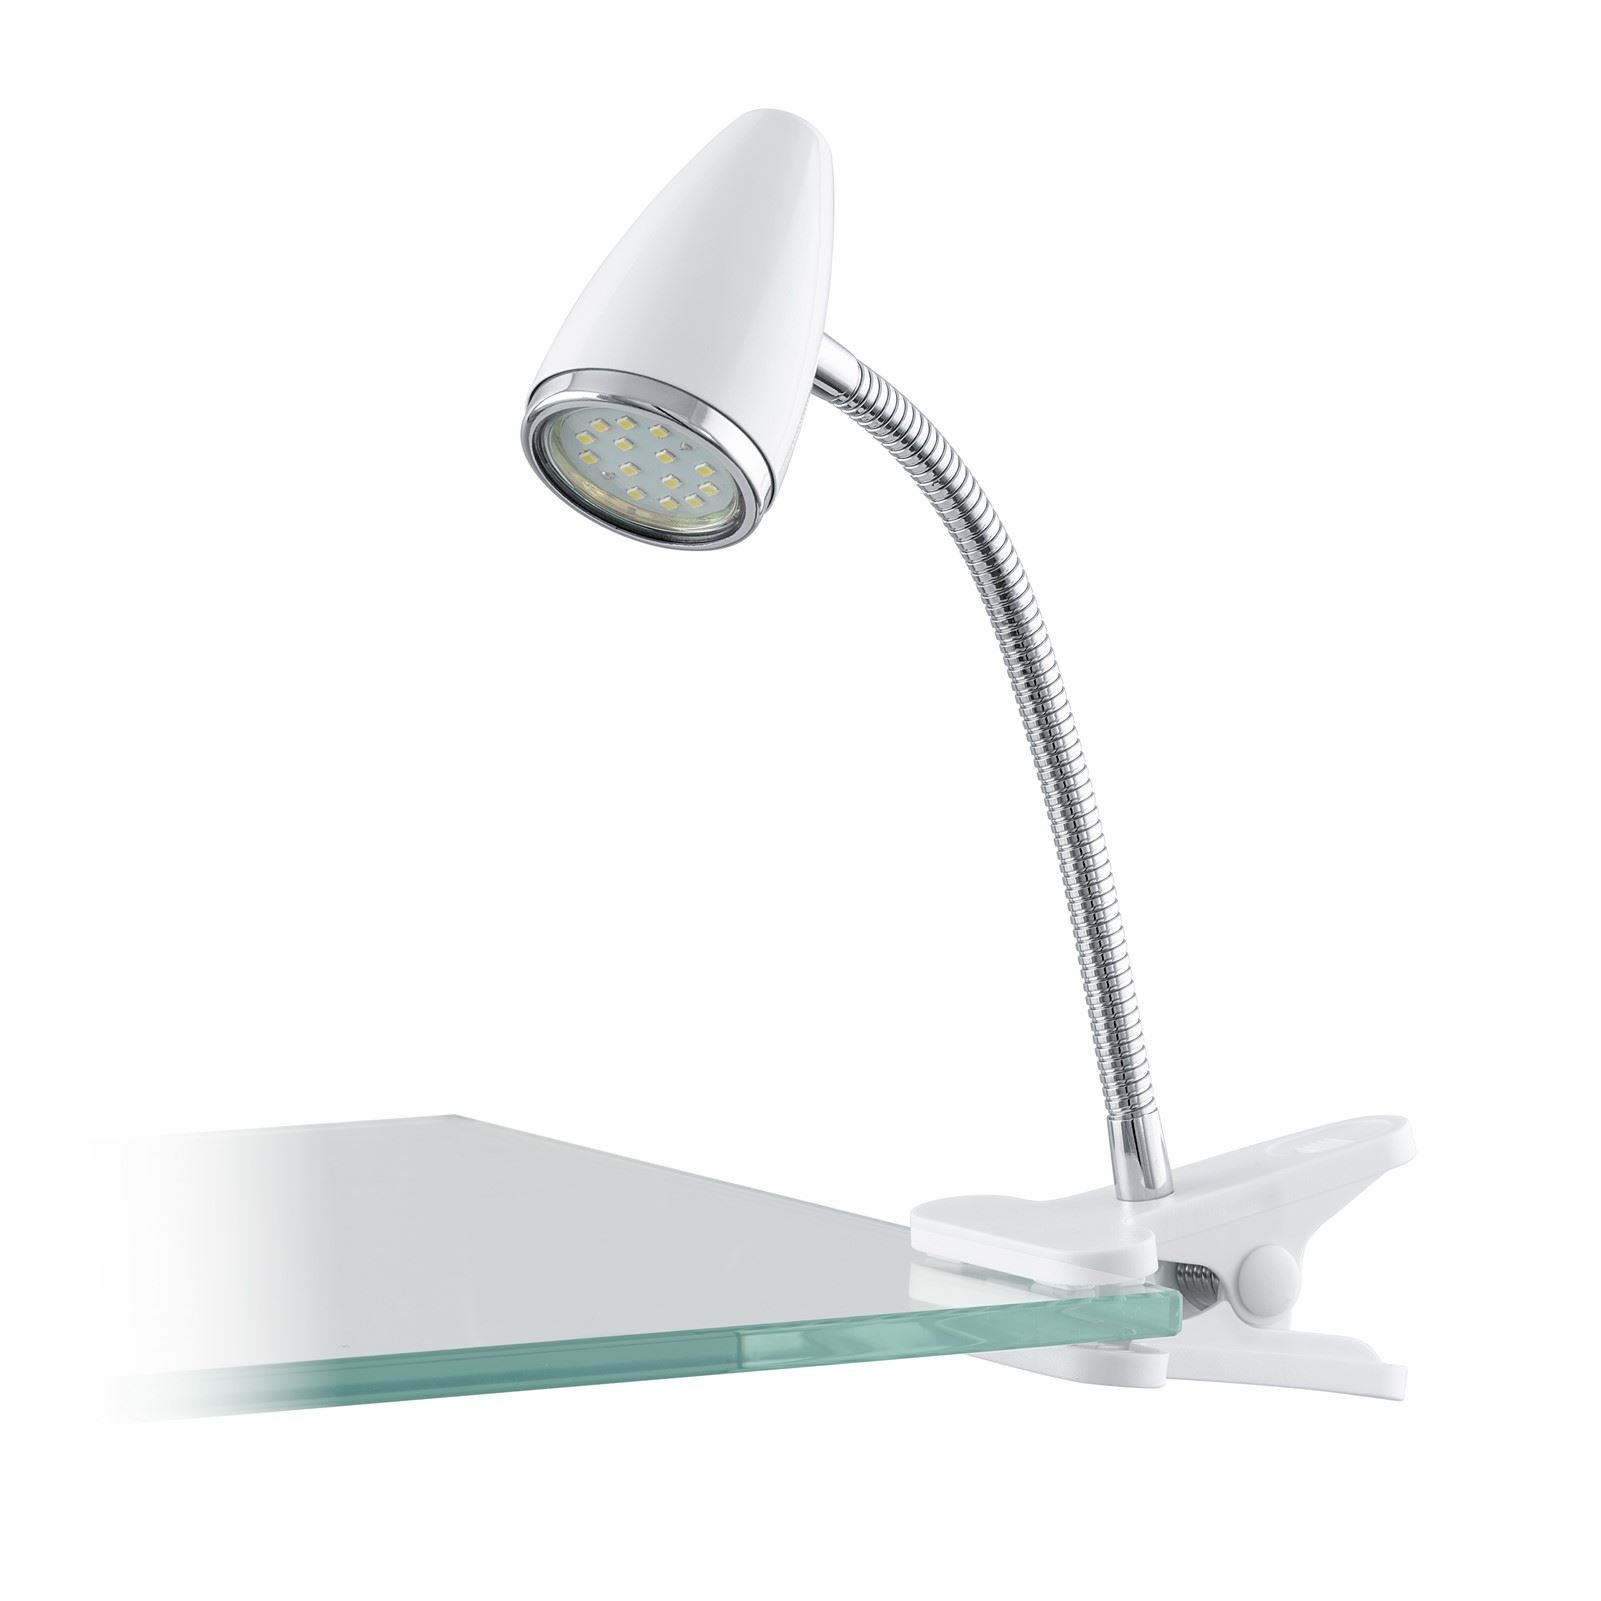 Riccio Clip Lamp 1 Light Gu10-Led Plastic Steel White Chrome